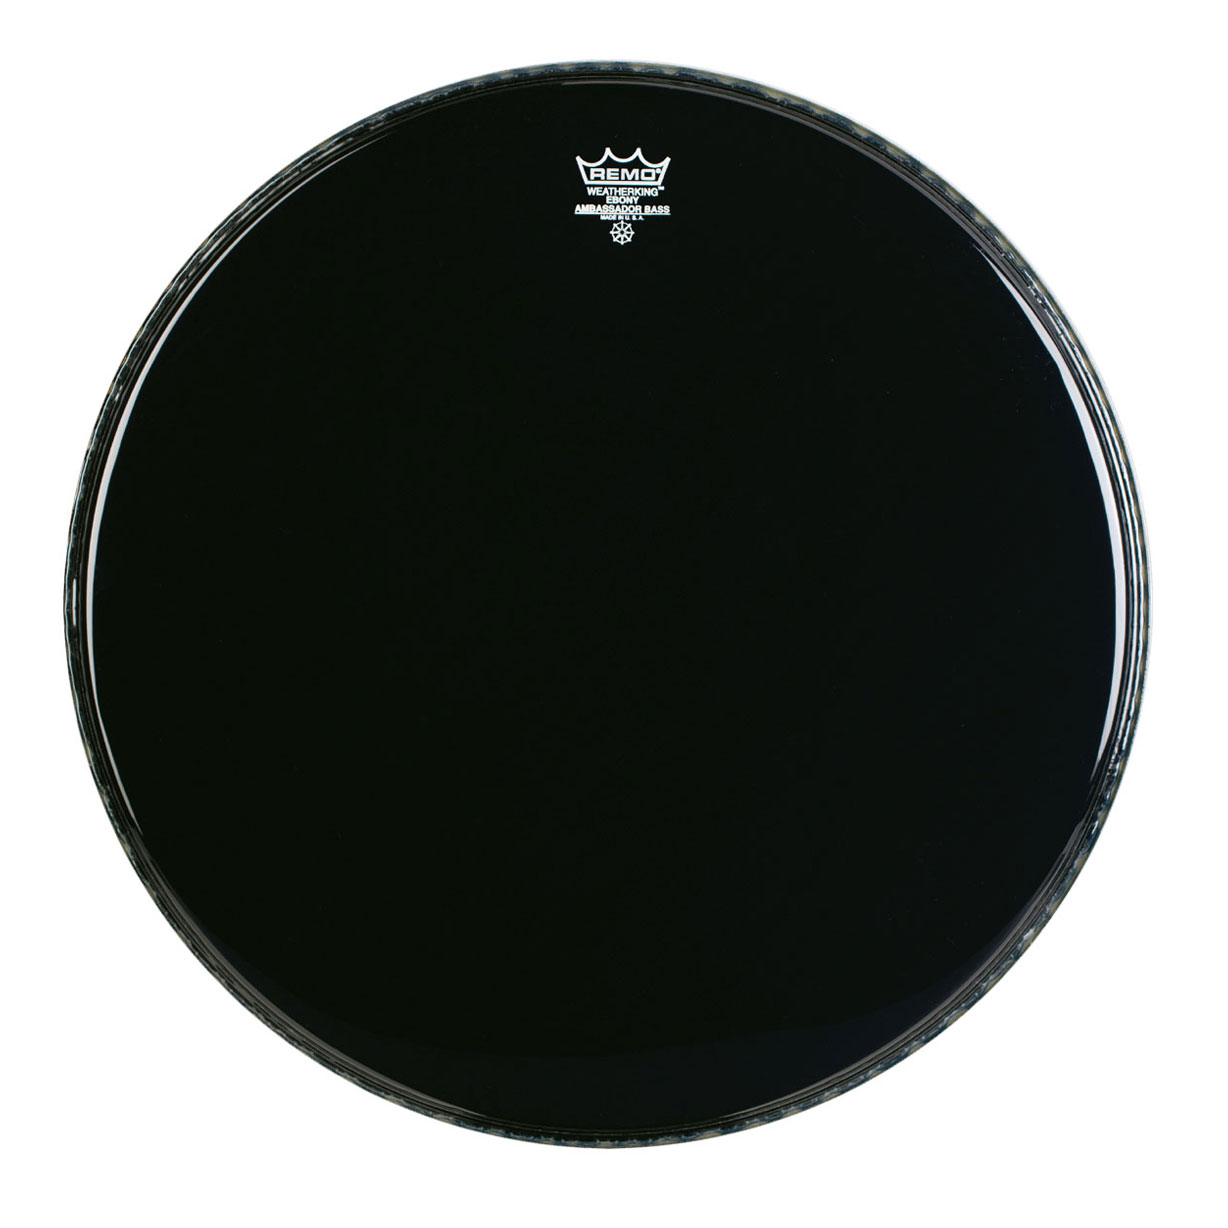 "Remo 30"" Ambassador Ebony Crimplock Marching Bass Drum Head"